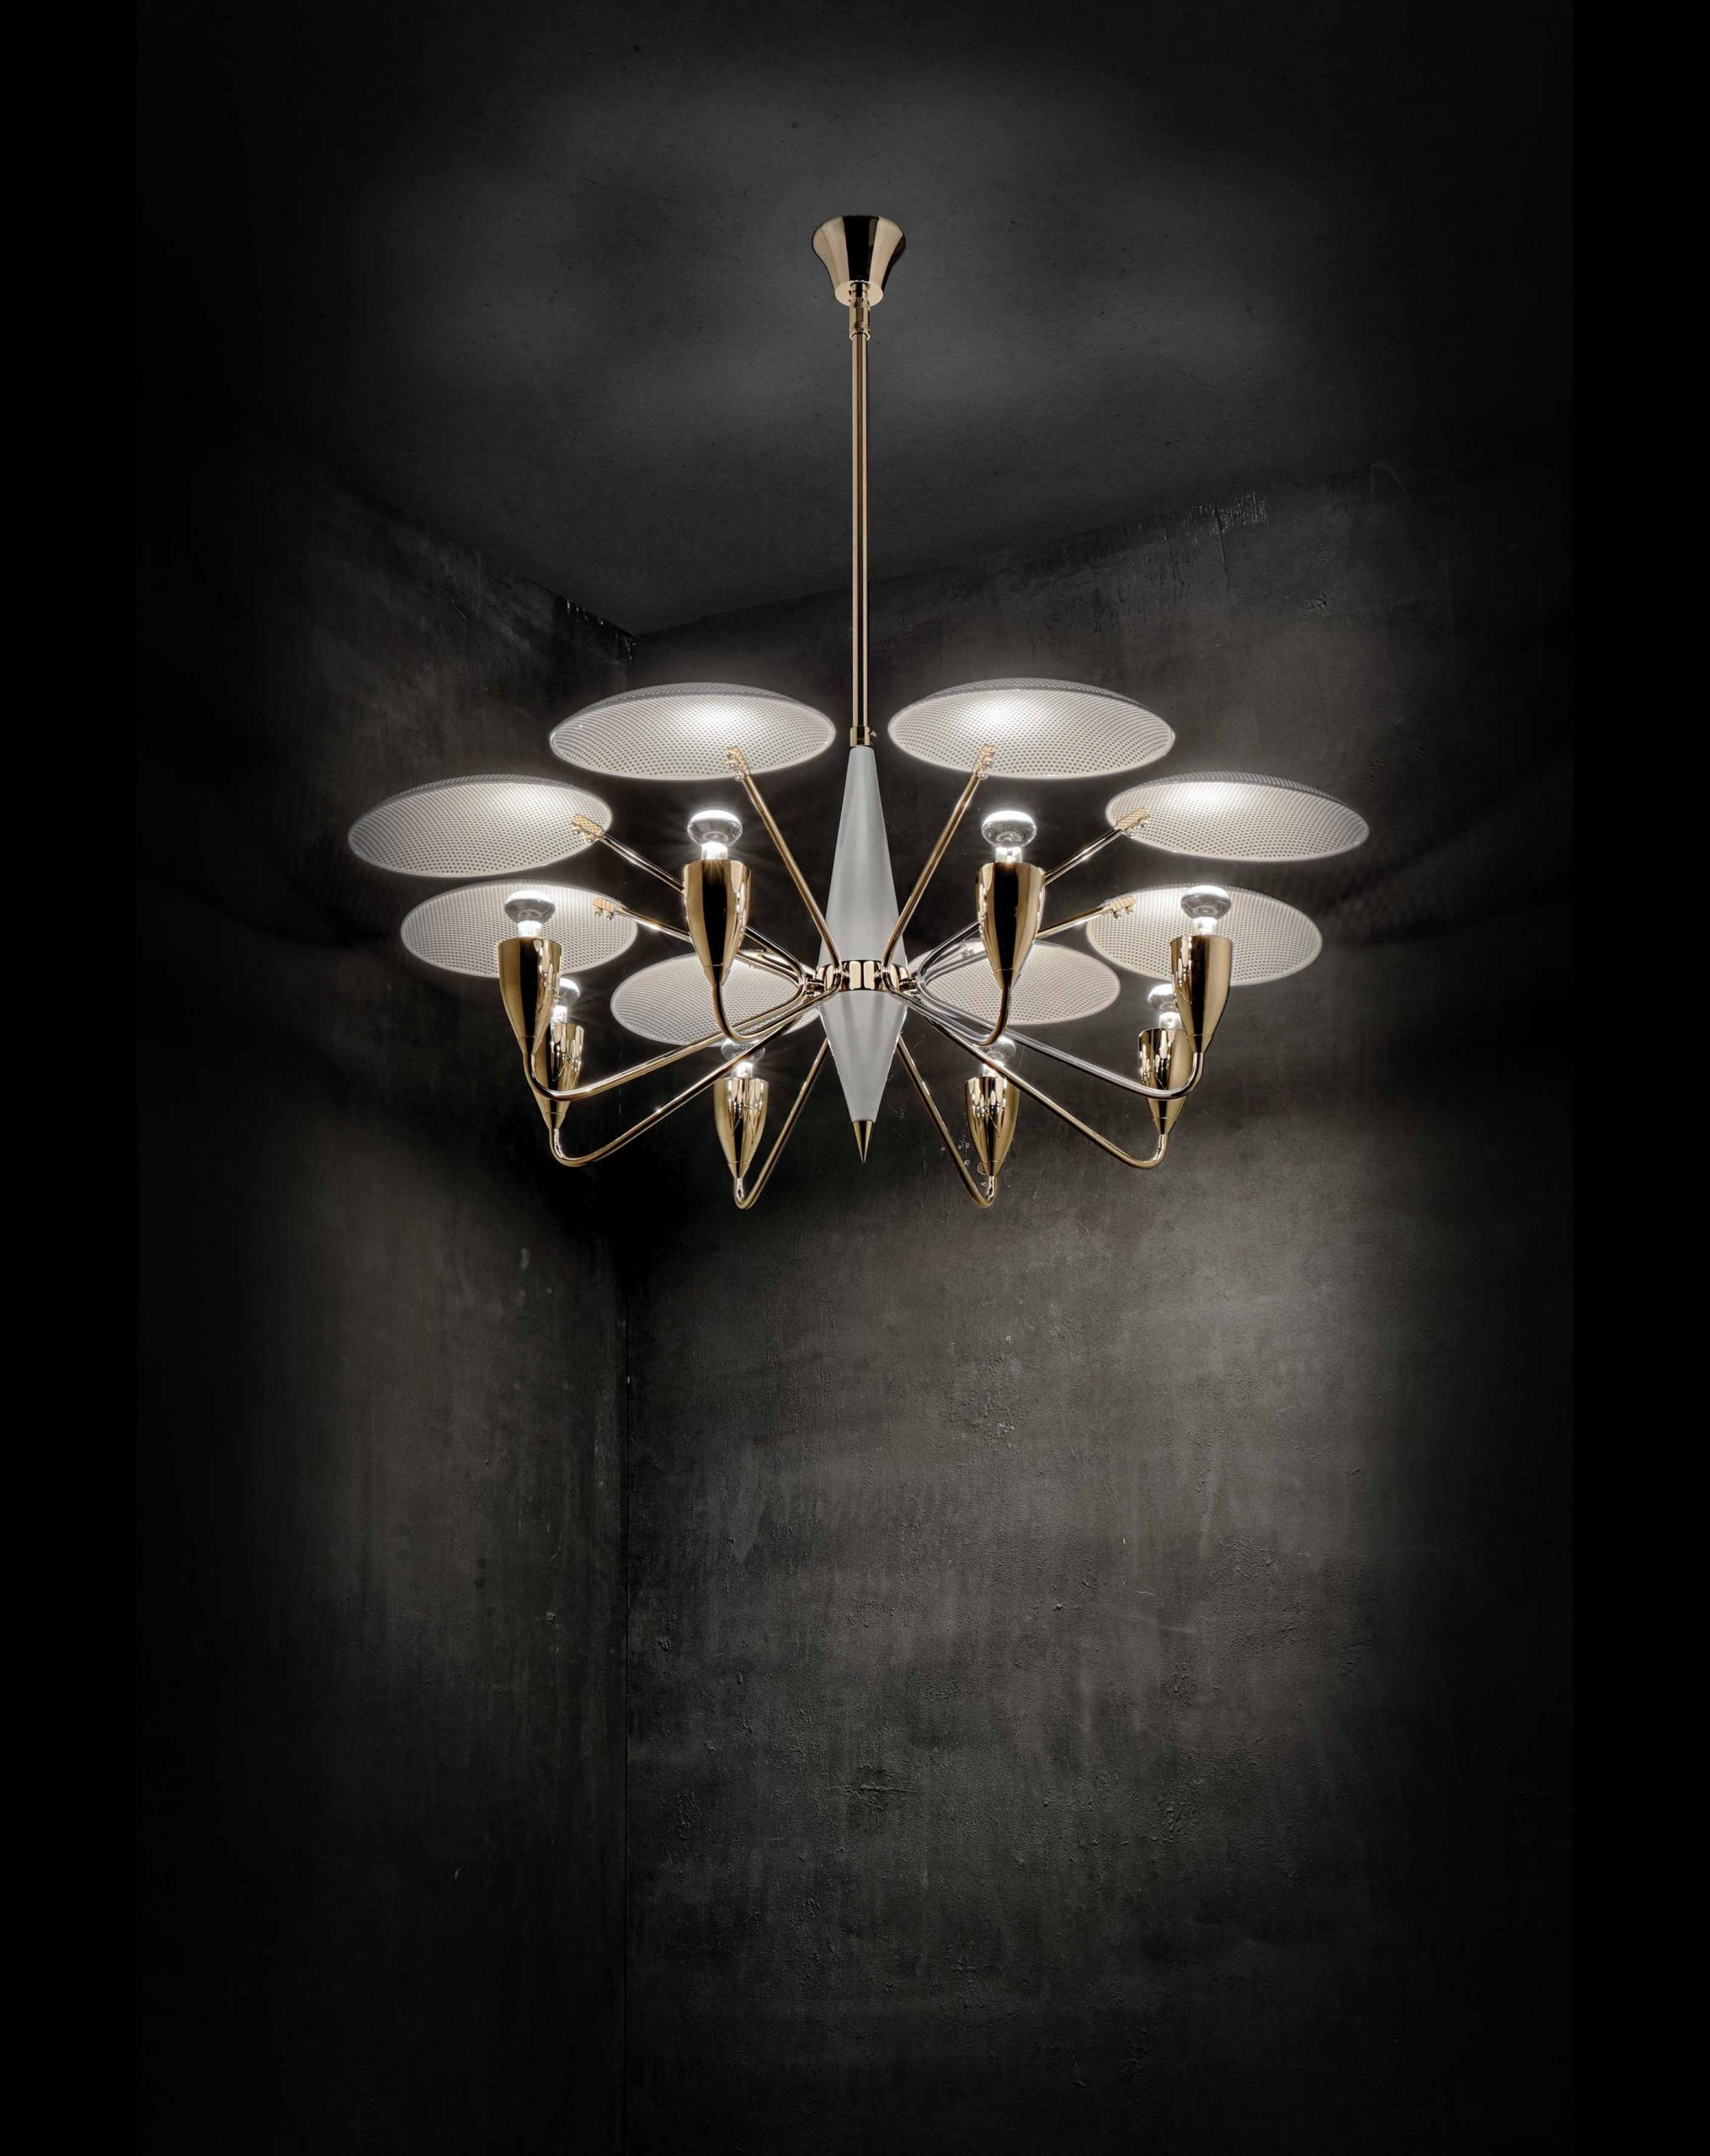 Best Deals: Discover The Top Lighting Products According to USA Trends For 2021! top lighting products Best Deals: Discover The Top Lighting Products According to USA Trends For 2021! peggy scaled